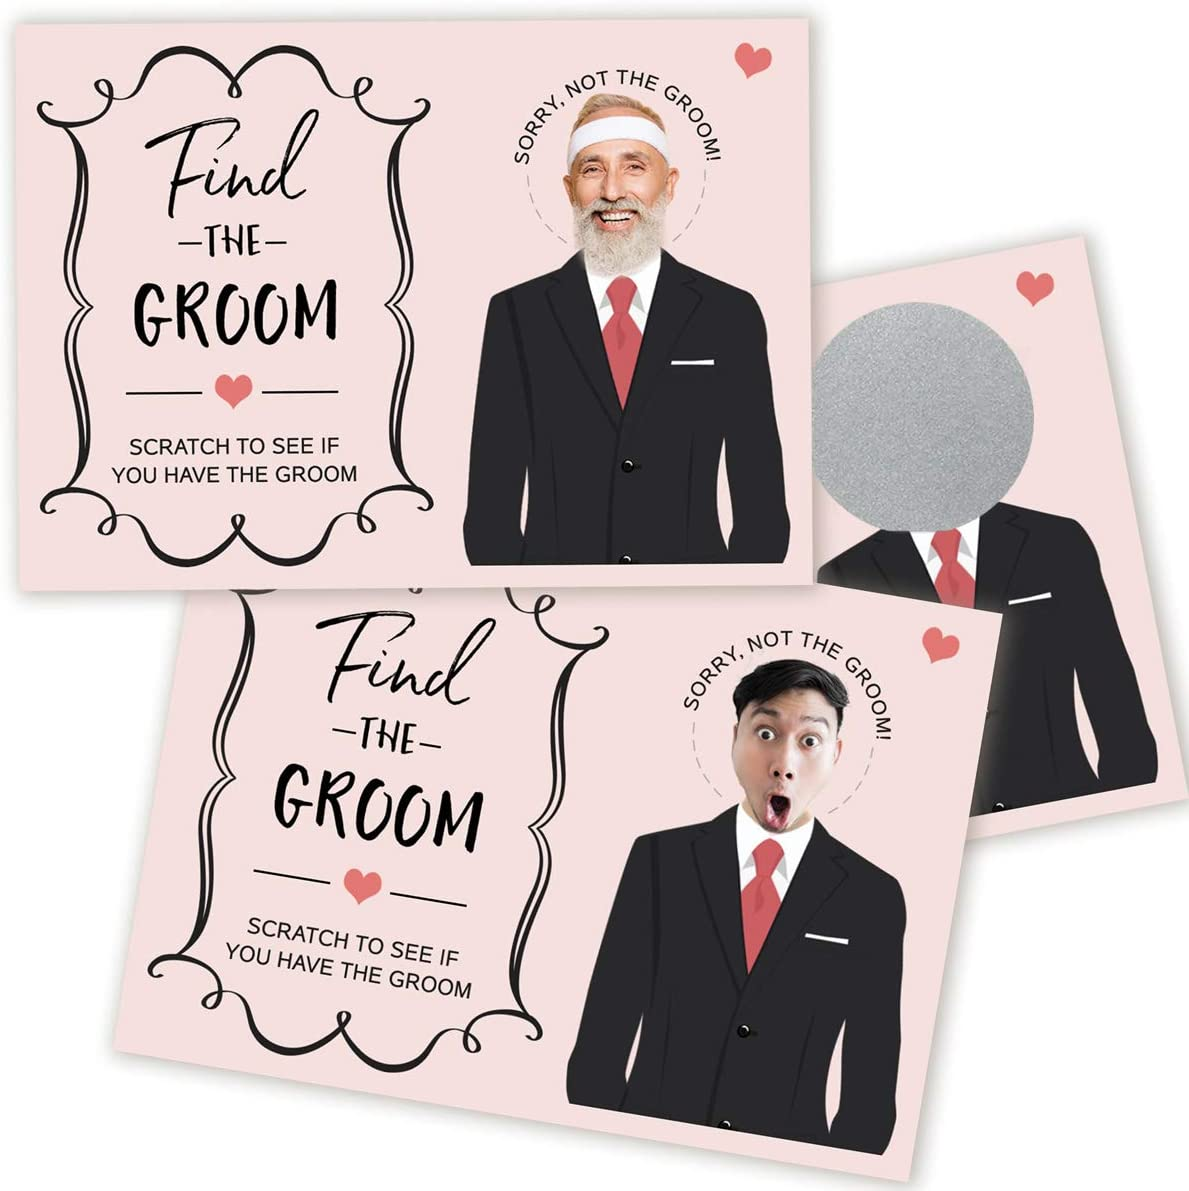 24 Personalized Bridal Shower Scratch Off Game Cards Pinks Bride and Groom